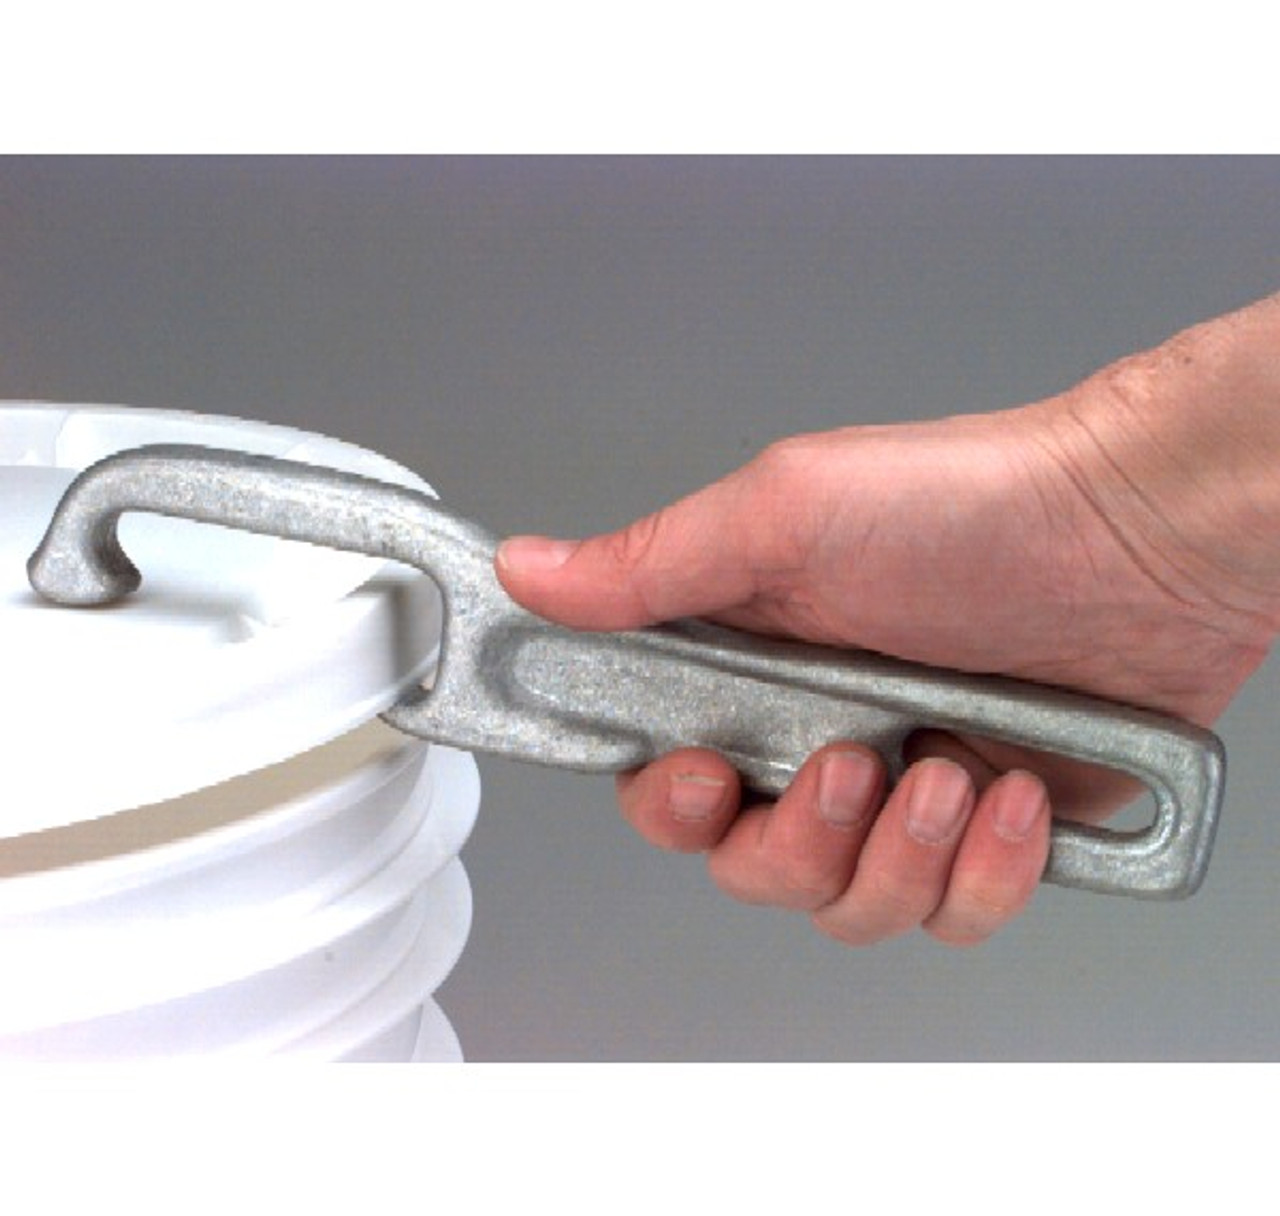 Aluminum Bucket Lid Lifter - Makes Lid Lifting EASY!